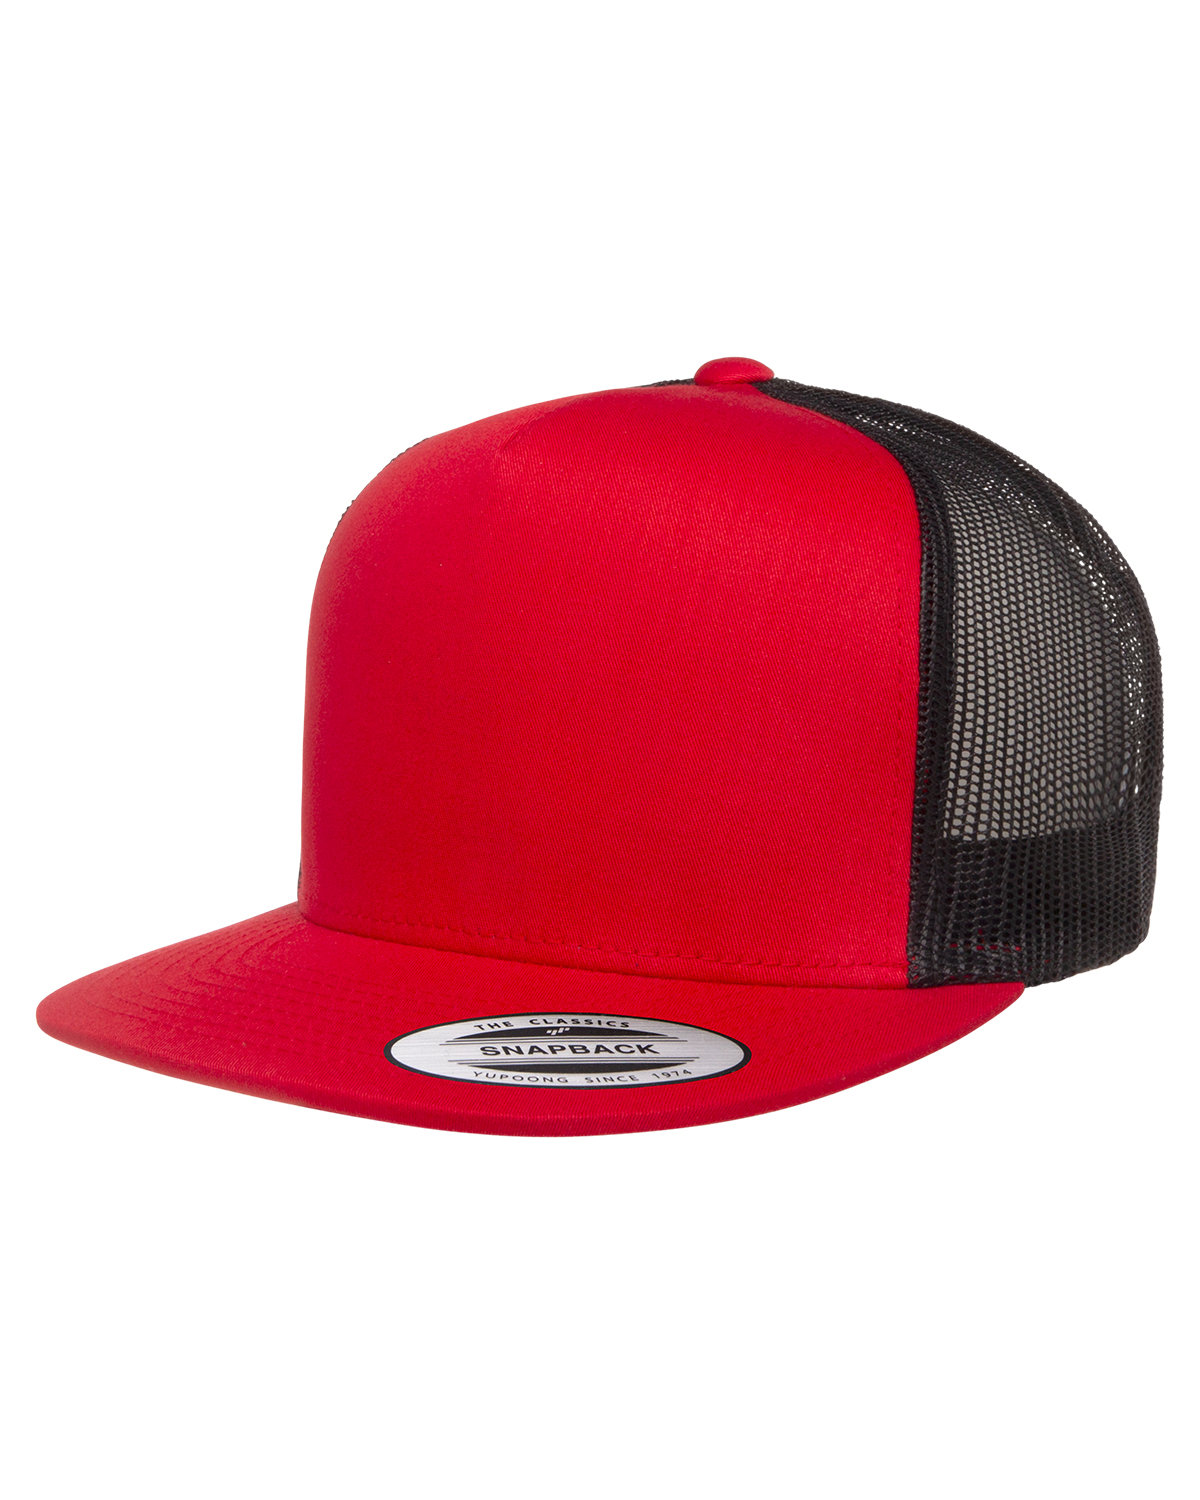 Yupoong Adult 5-Panel Classic Trucker Cap RED/ BLACK